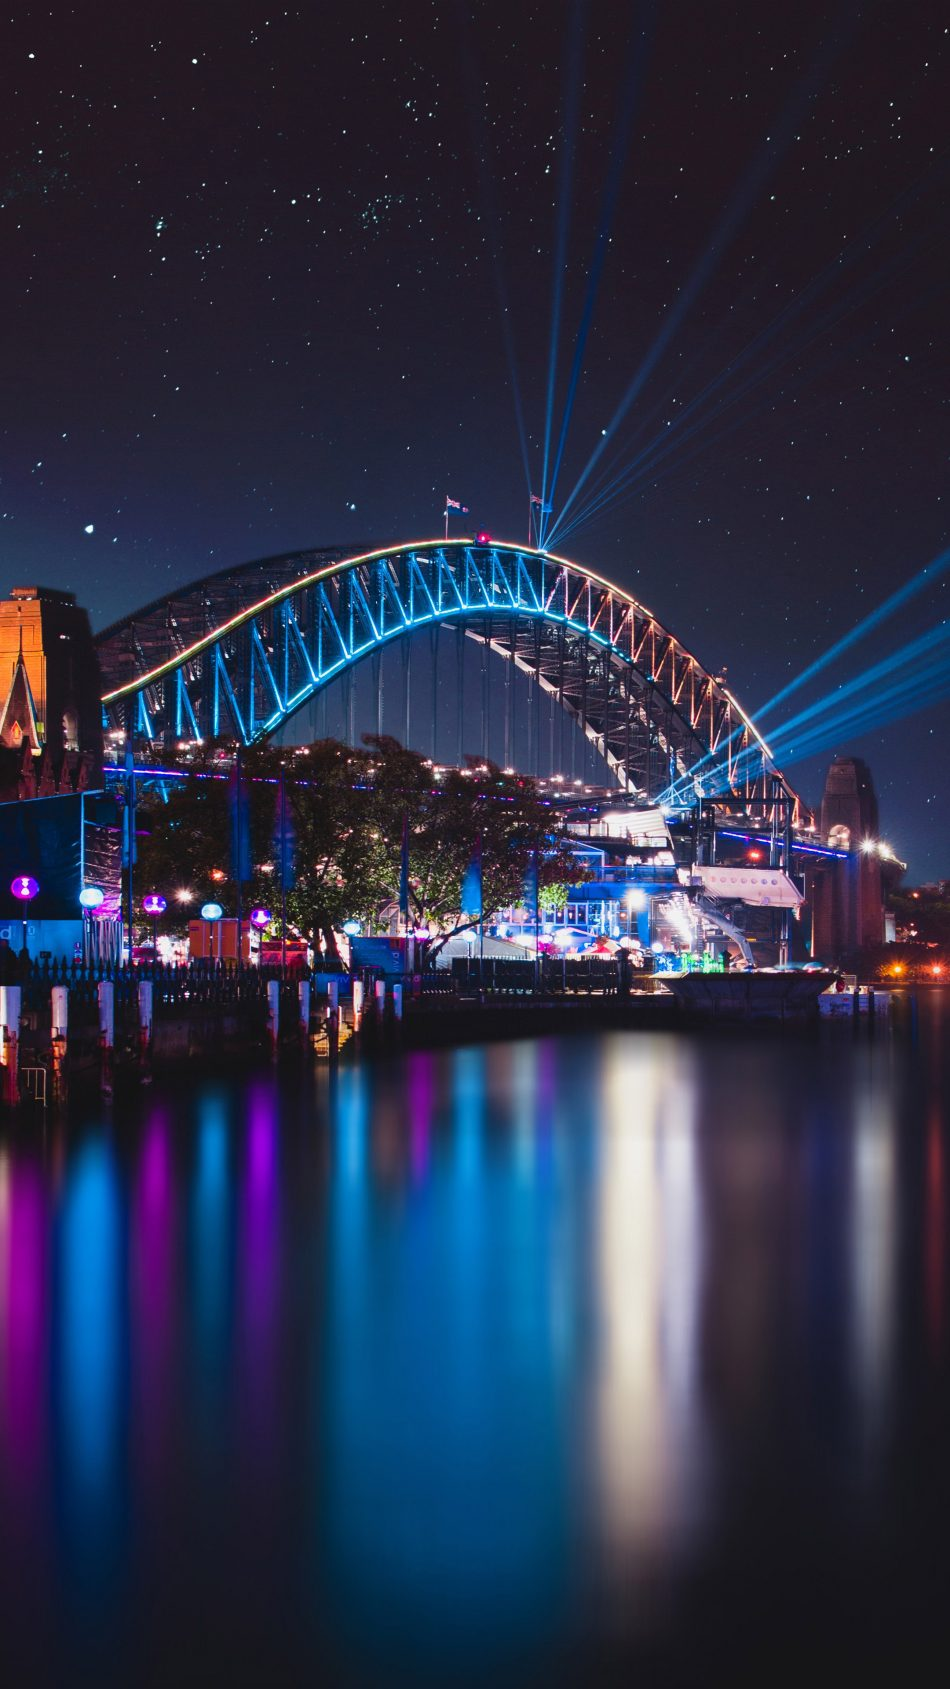 Sydney Harbour Bridge Night Reflections Cityscape 4K Ultra HD Mobile Wallpaper